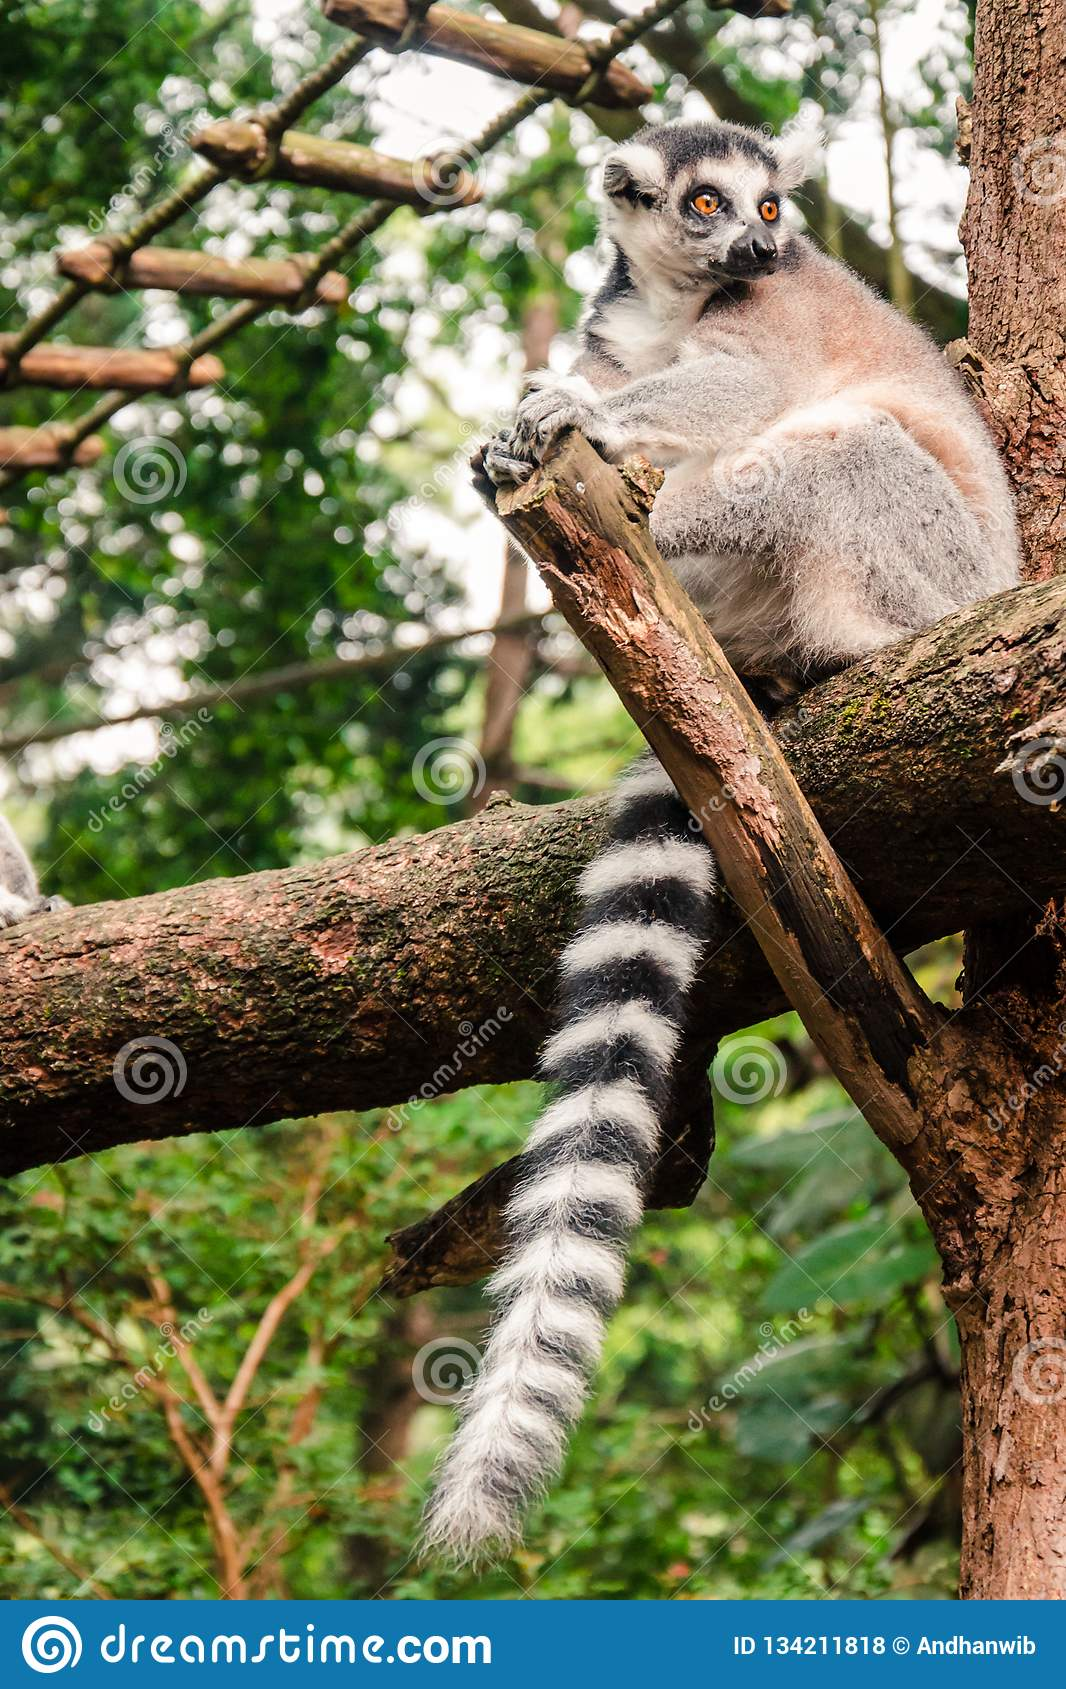 Ring-tailed Lemur Relaxing on a Log